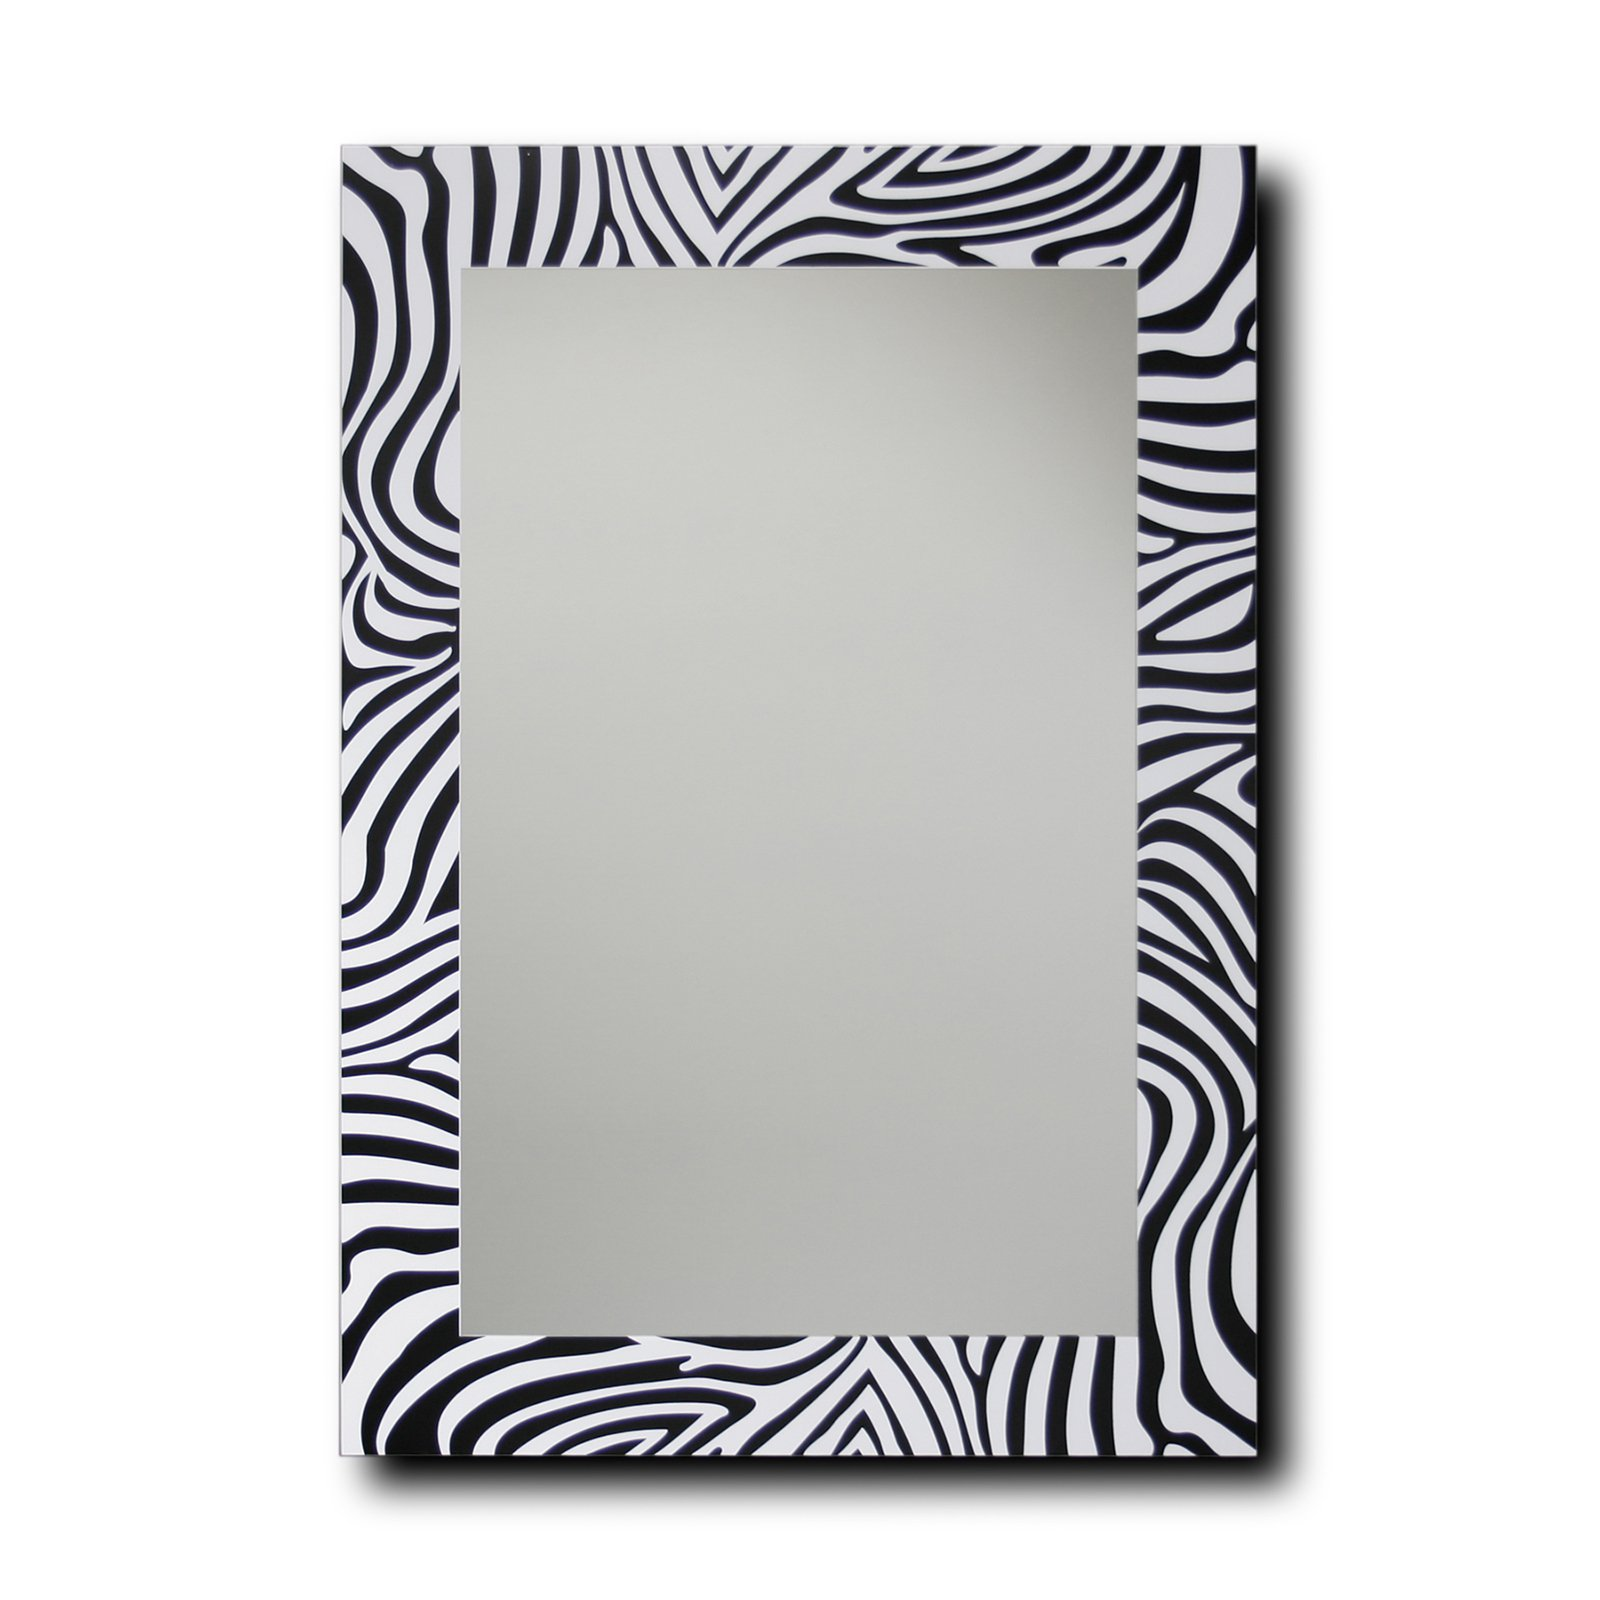 Leick Furniture Black and White Zebra Decorative Wall Mirror - 20 x 28 in.